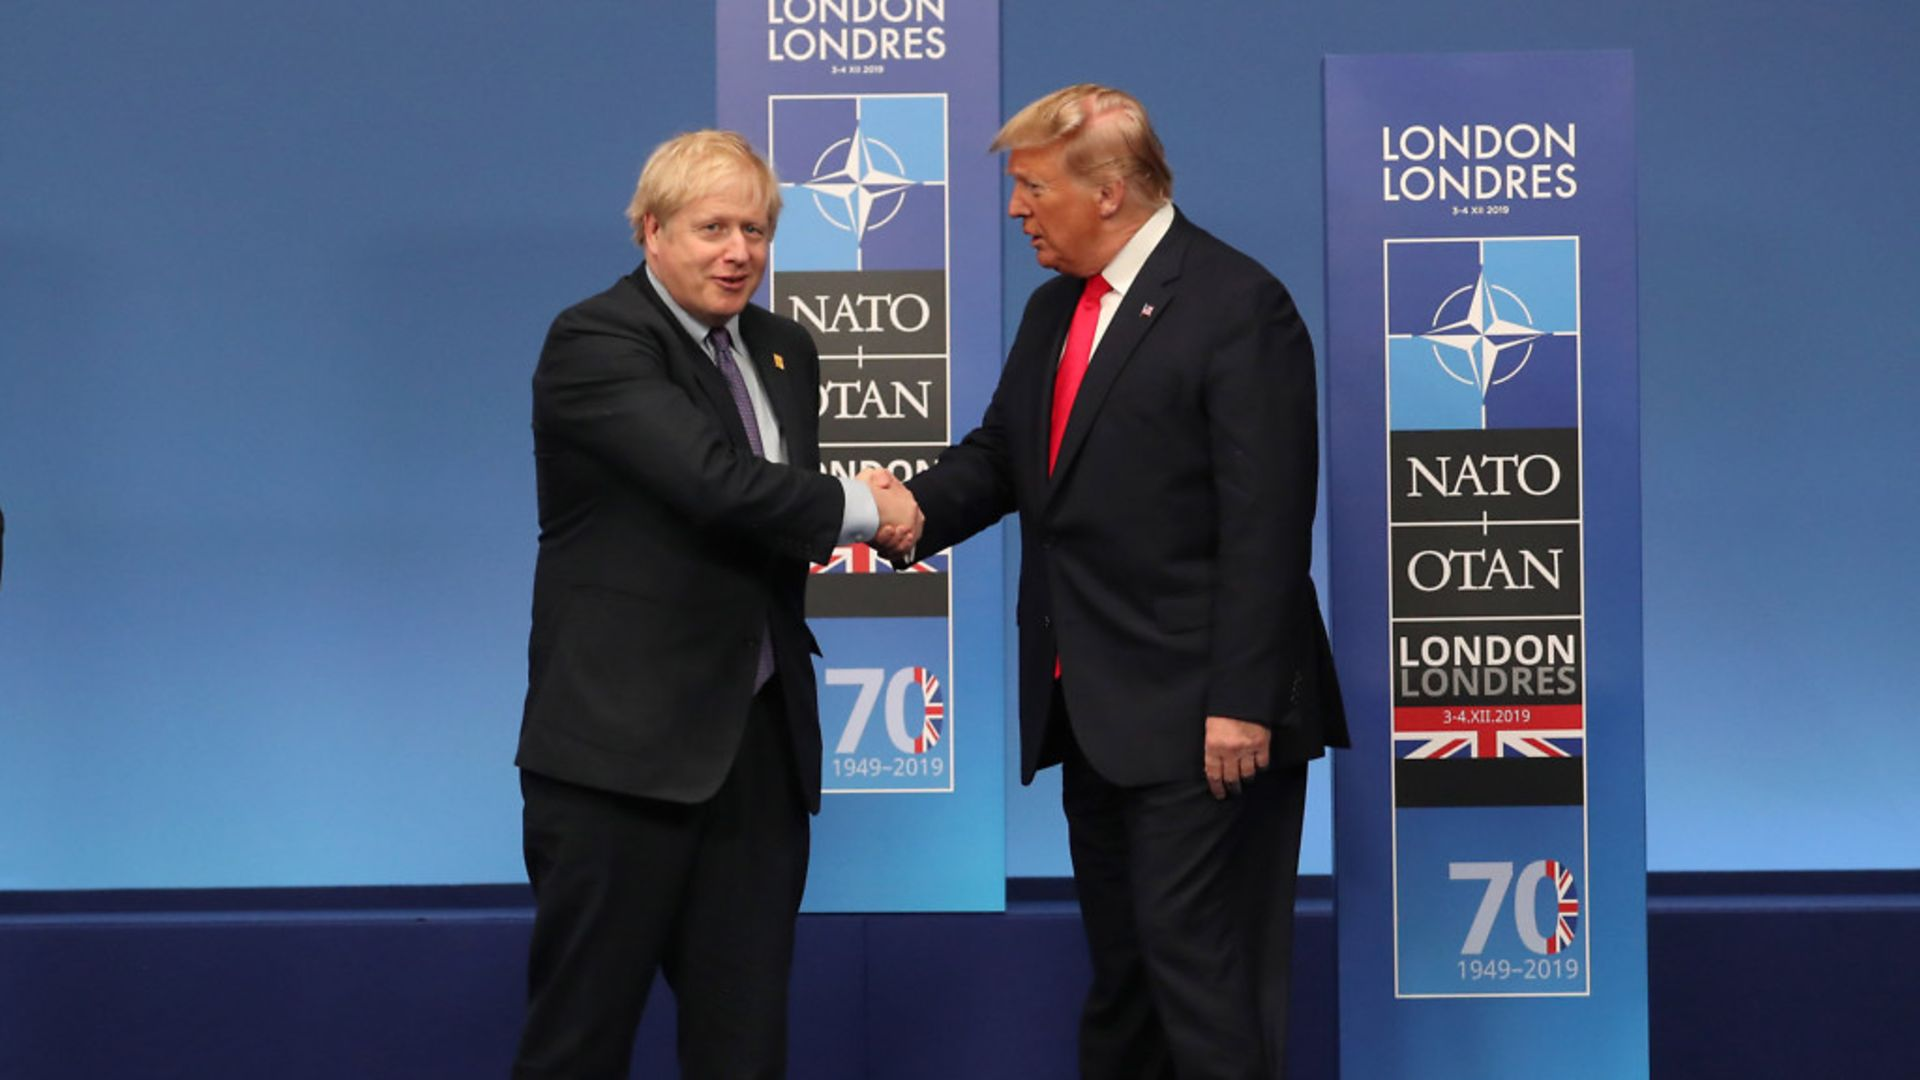 Prime minister Boris Johnson and out-going US President Donald Trump during the annual Nato heads of government summit - Credit: PA Wire/PA Images